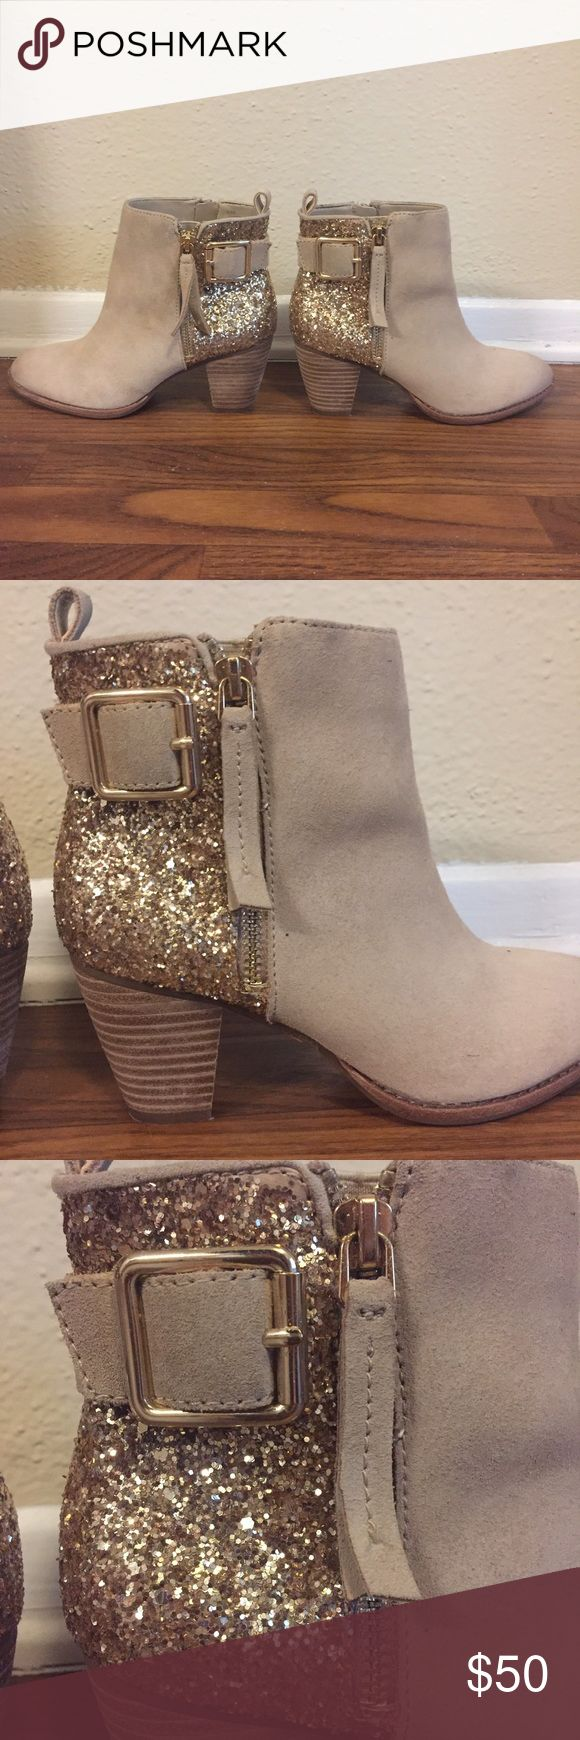 Gianni Bini taupe gold glitter booties Gold glitter heeled bootie. Worn once perfect condition Gianni Bini Shoes Ankle Boots & Booties